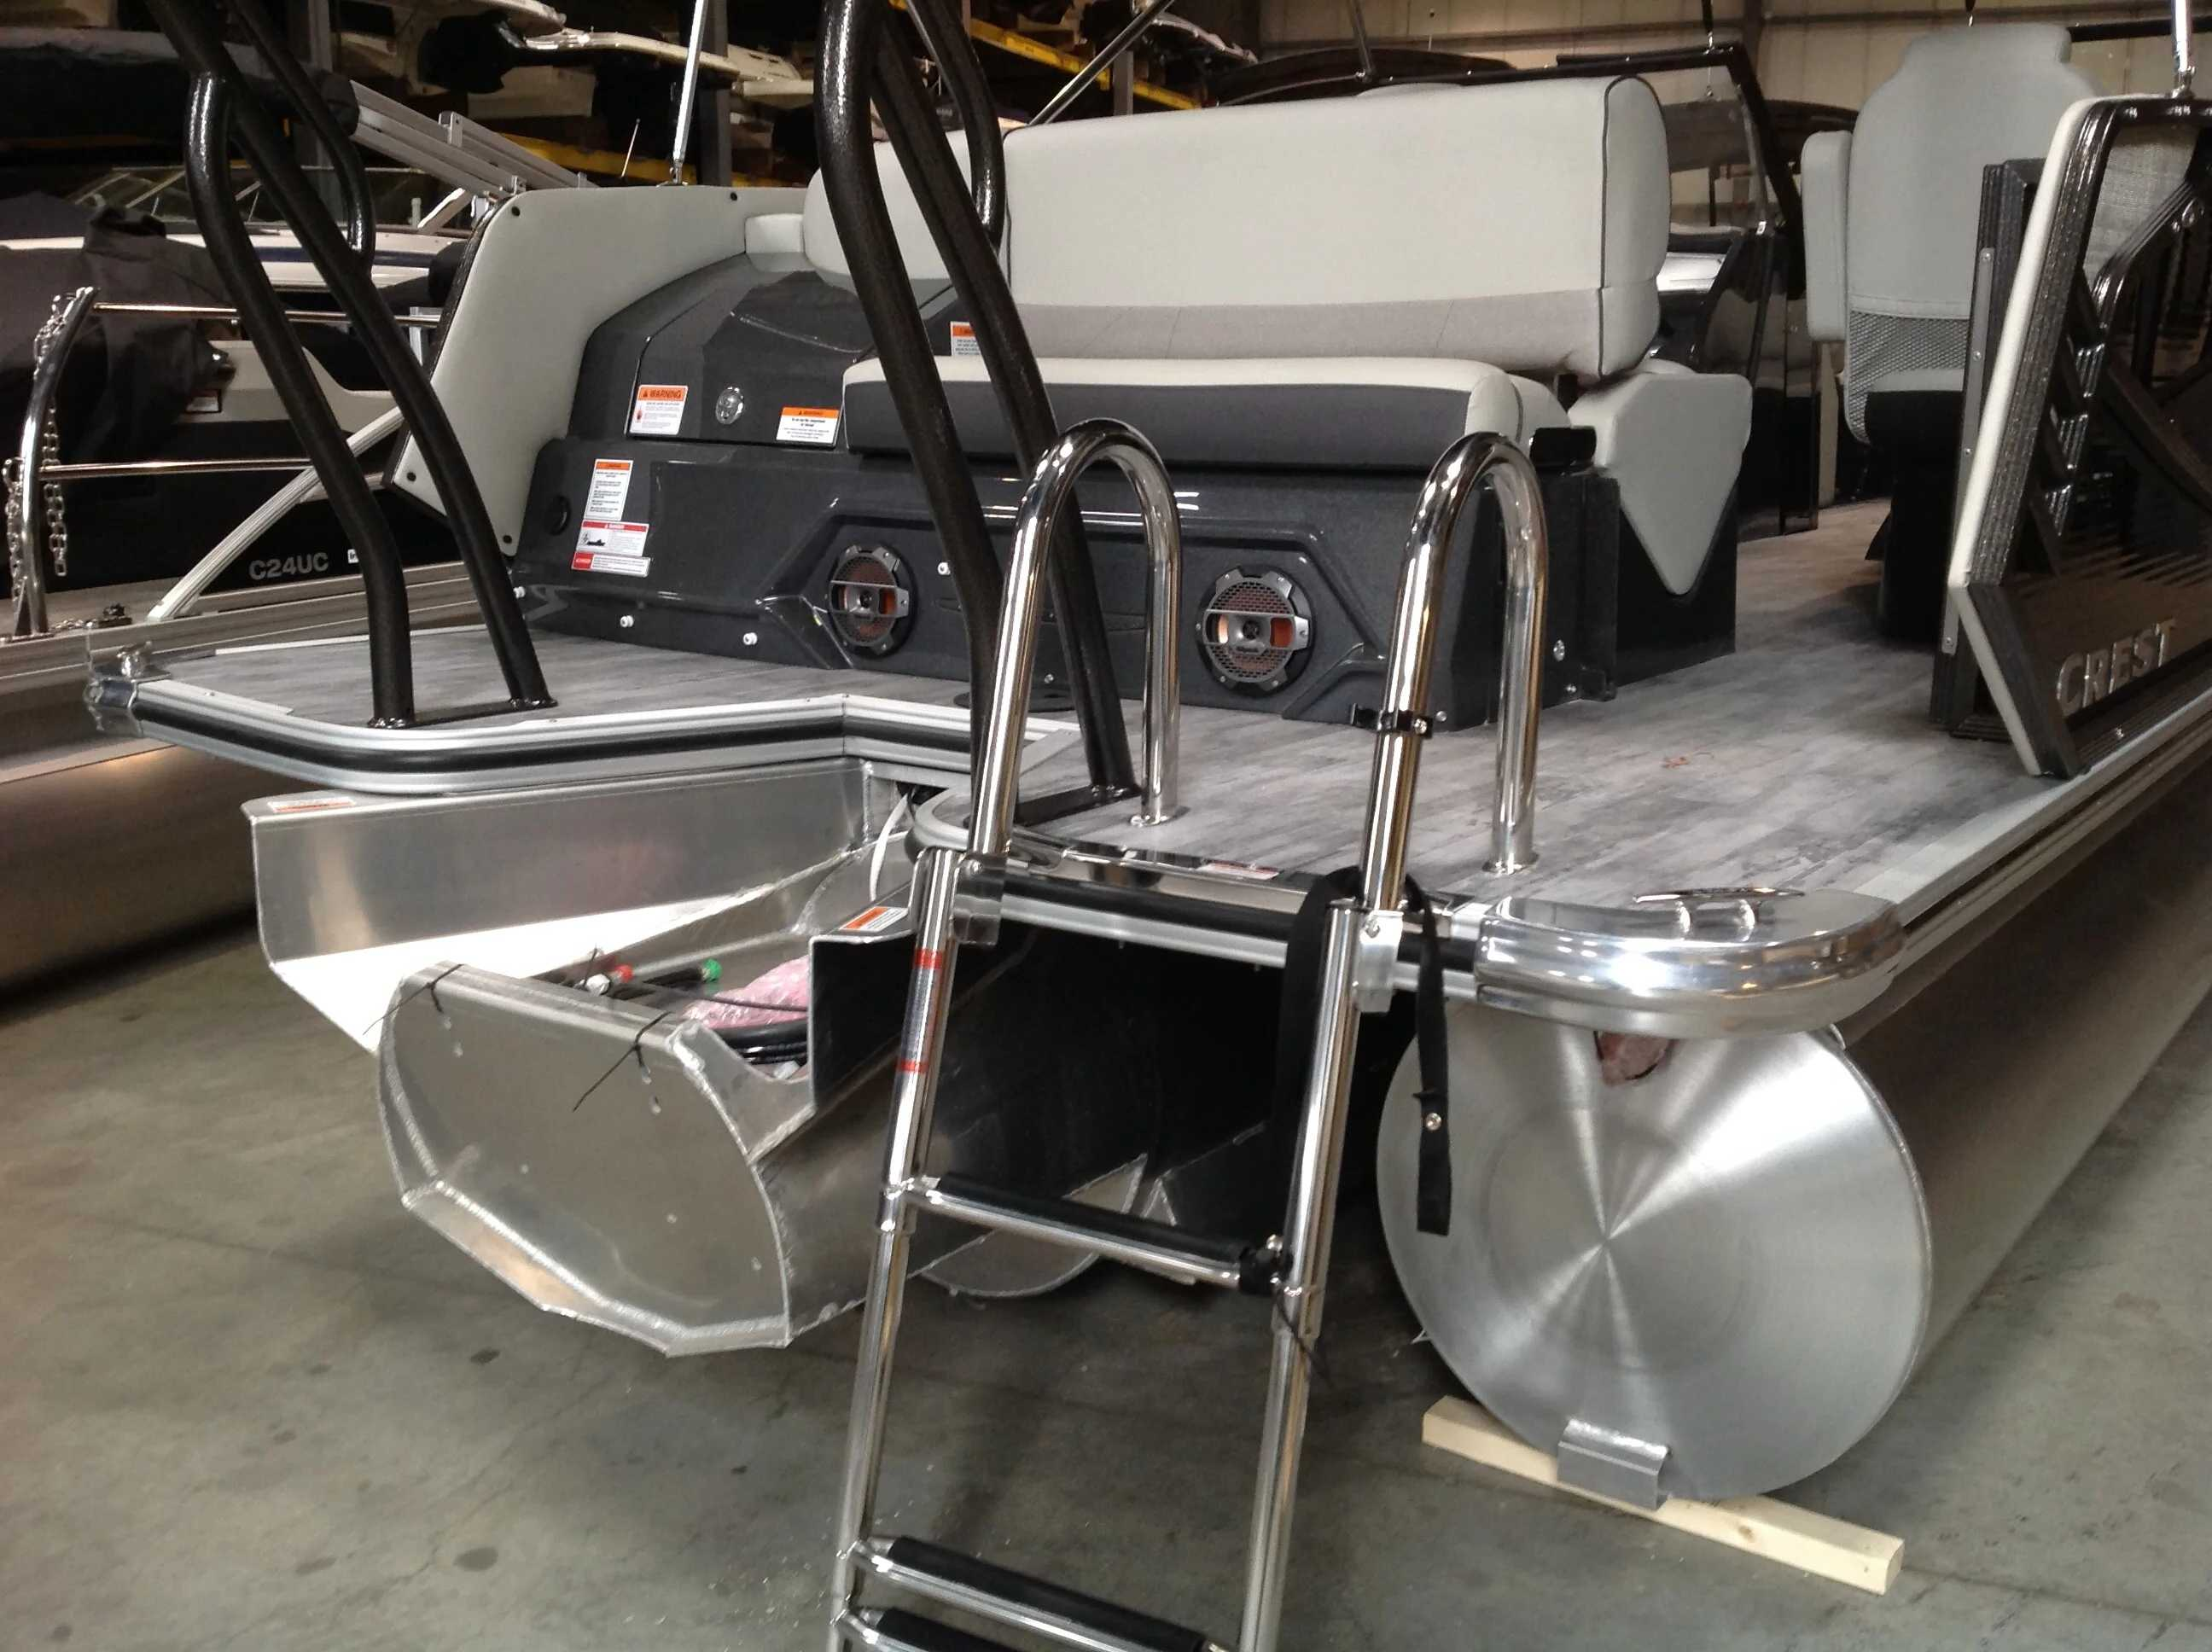 2021 Crest boat for sale, model of the boat is CONTINENTAL 250SLS & Image # 14 of 15